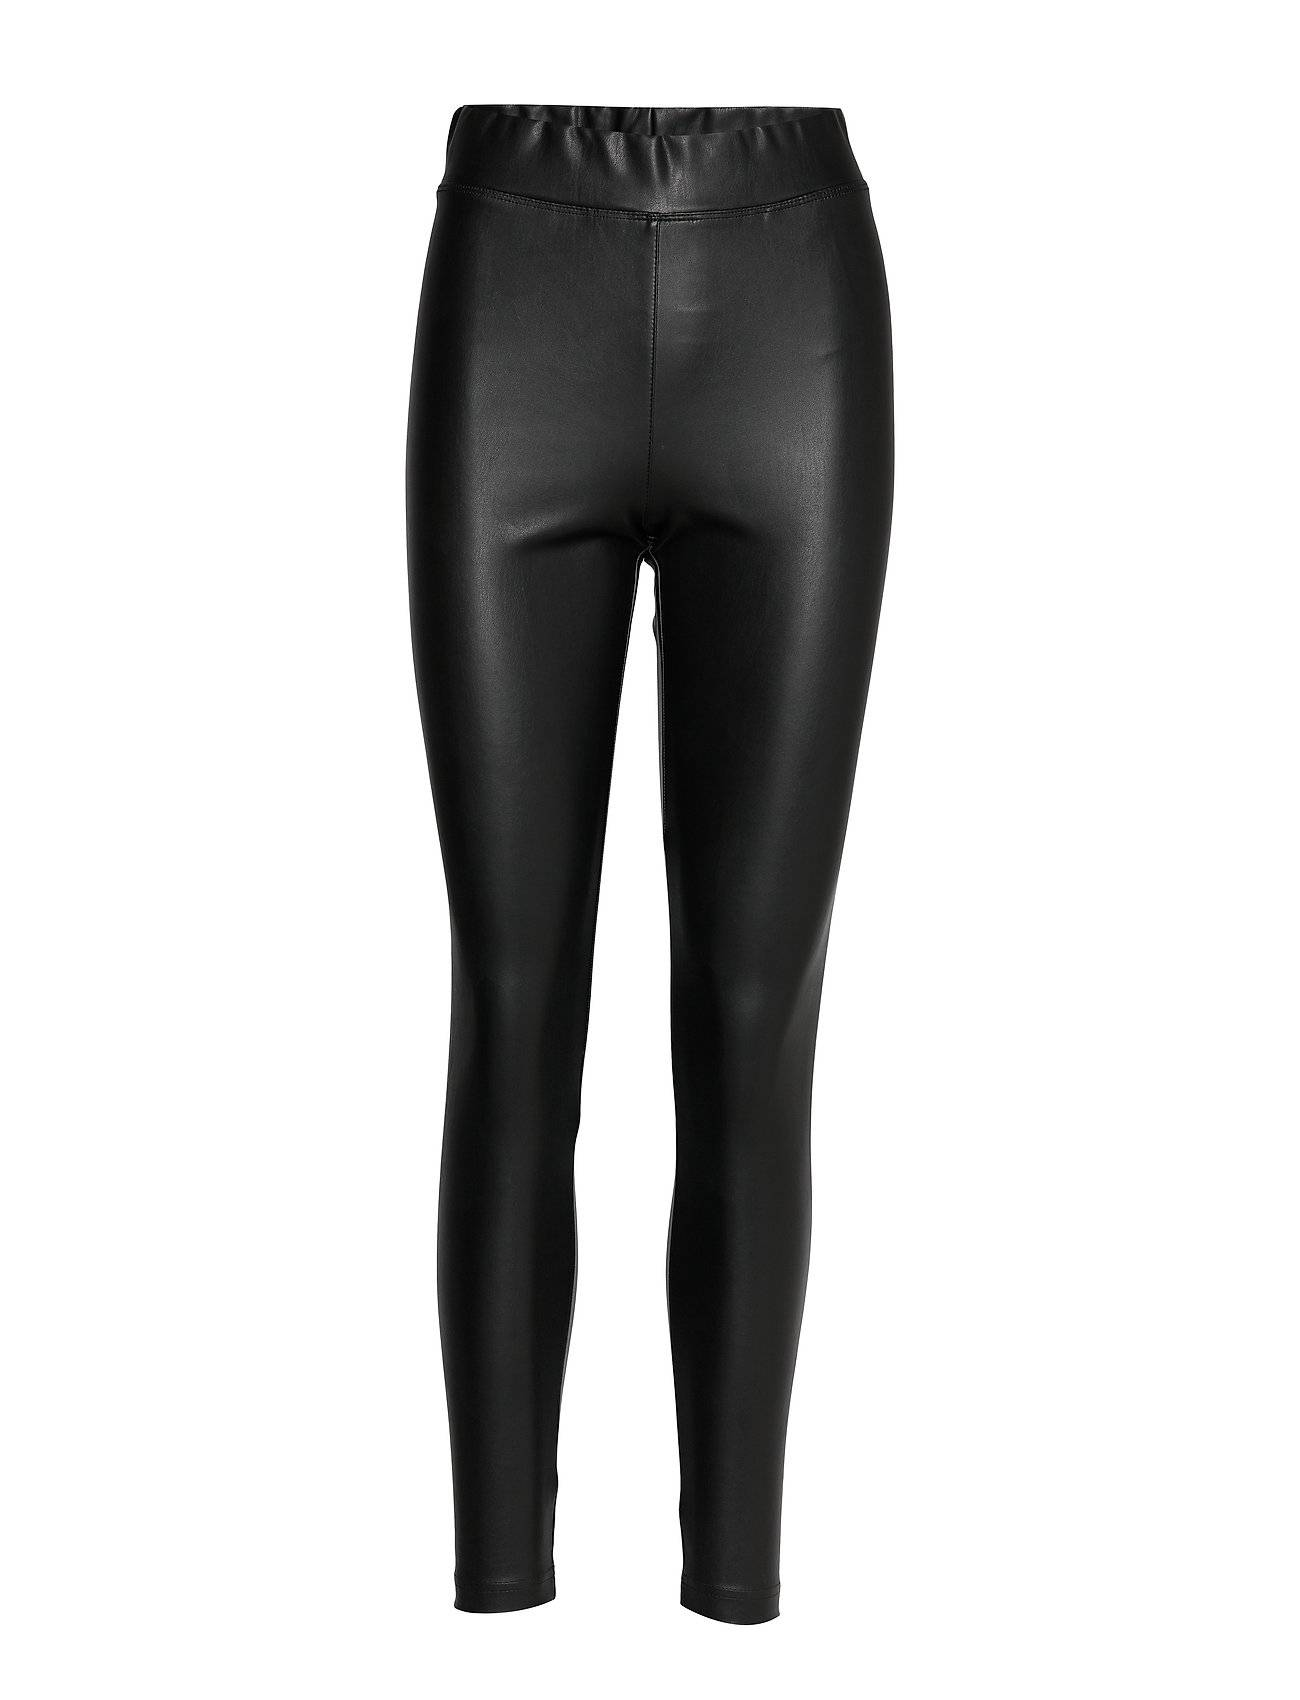 Image of ONLY Onlsuper-Star Pu Legging Pnt Leather Leggings/Housut Musta ONLY